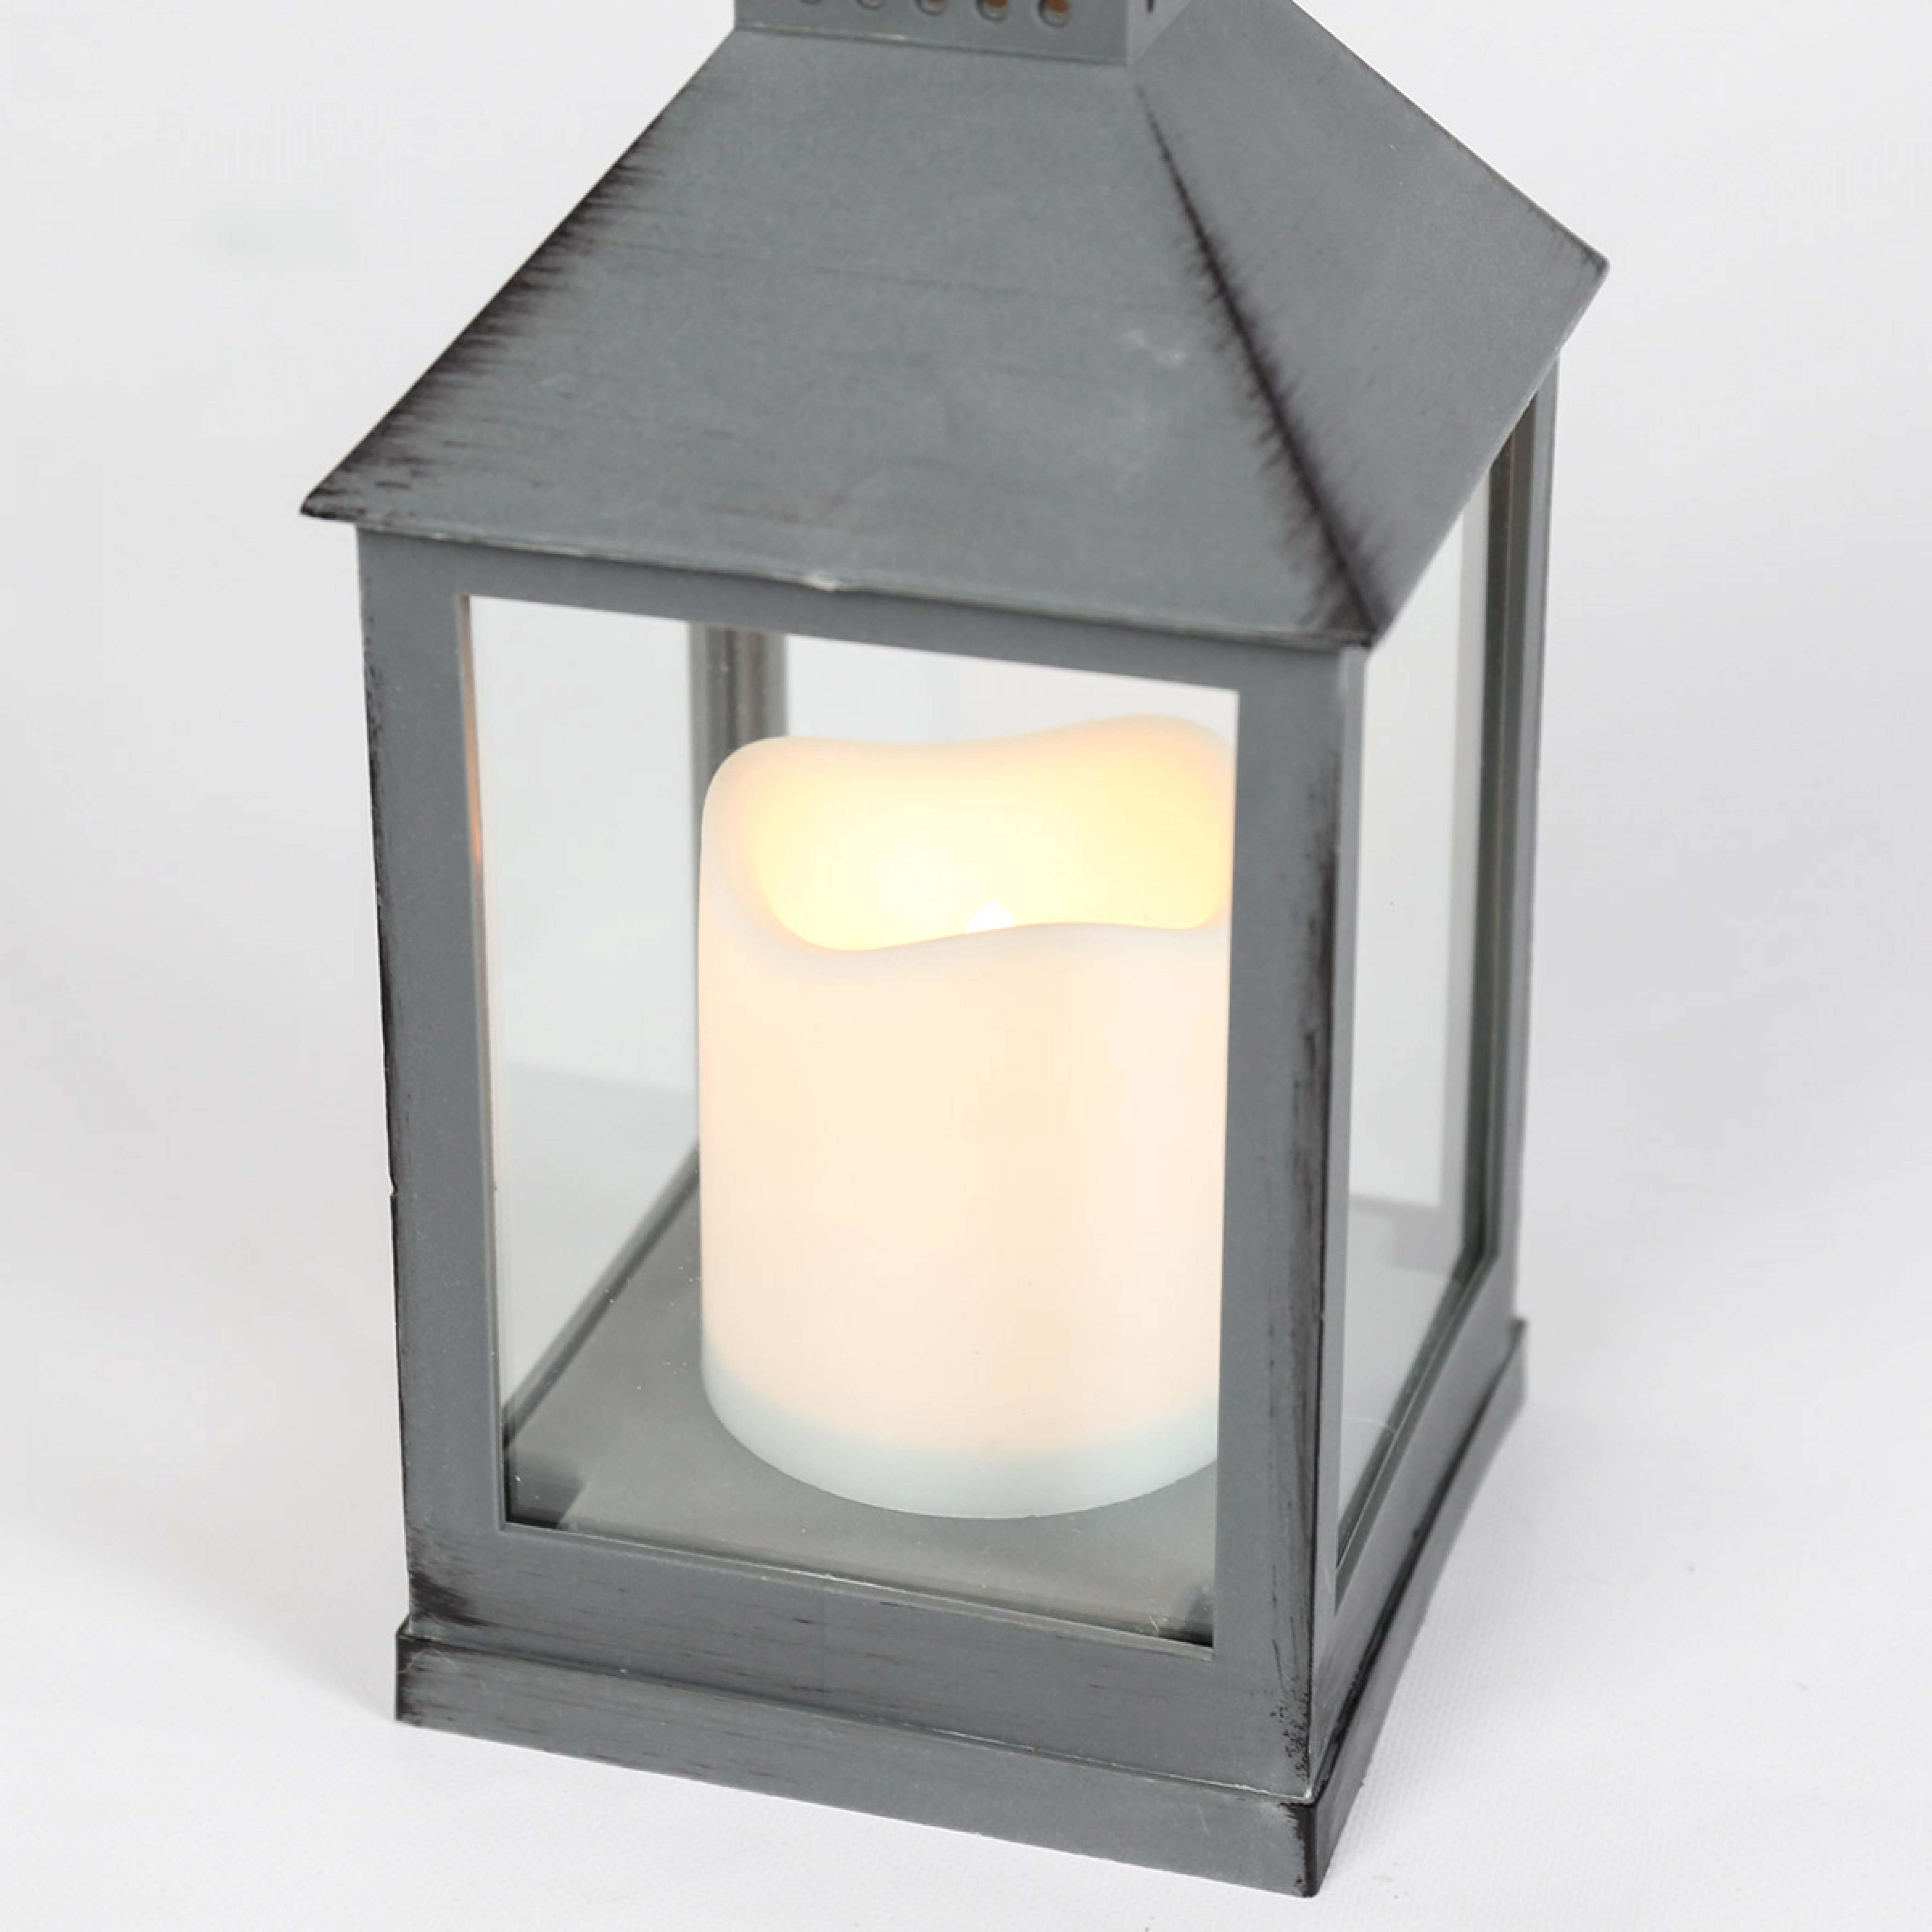 Outdoor Battery Flickering Candle Lantern, 24cm Regarding Outdoor Lanterns With Battery Candles (View 2 of 20)